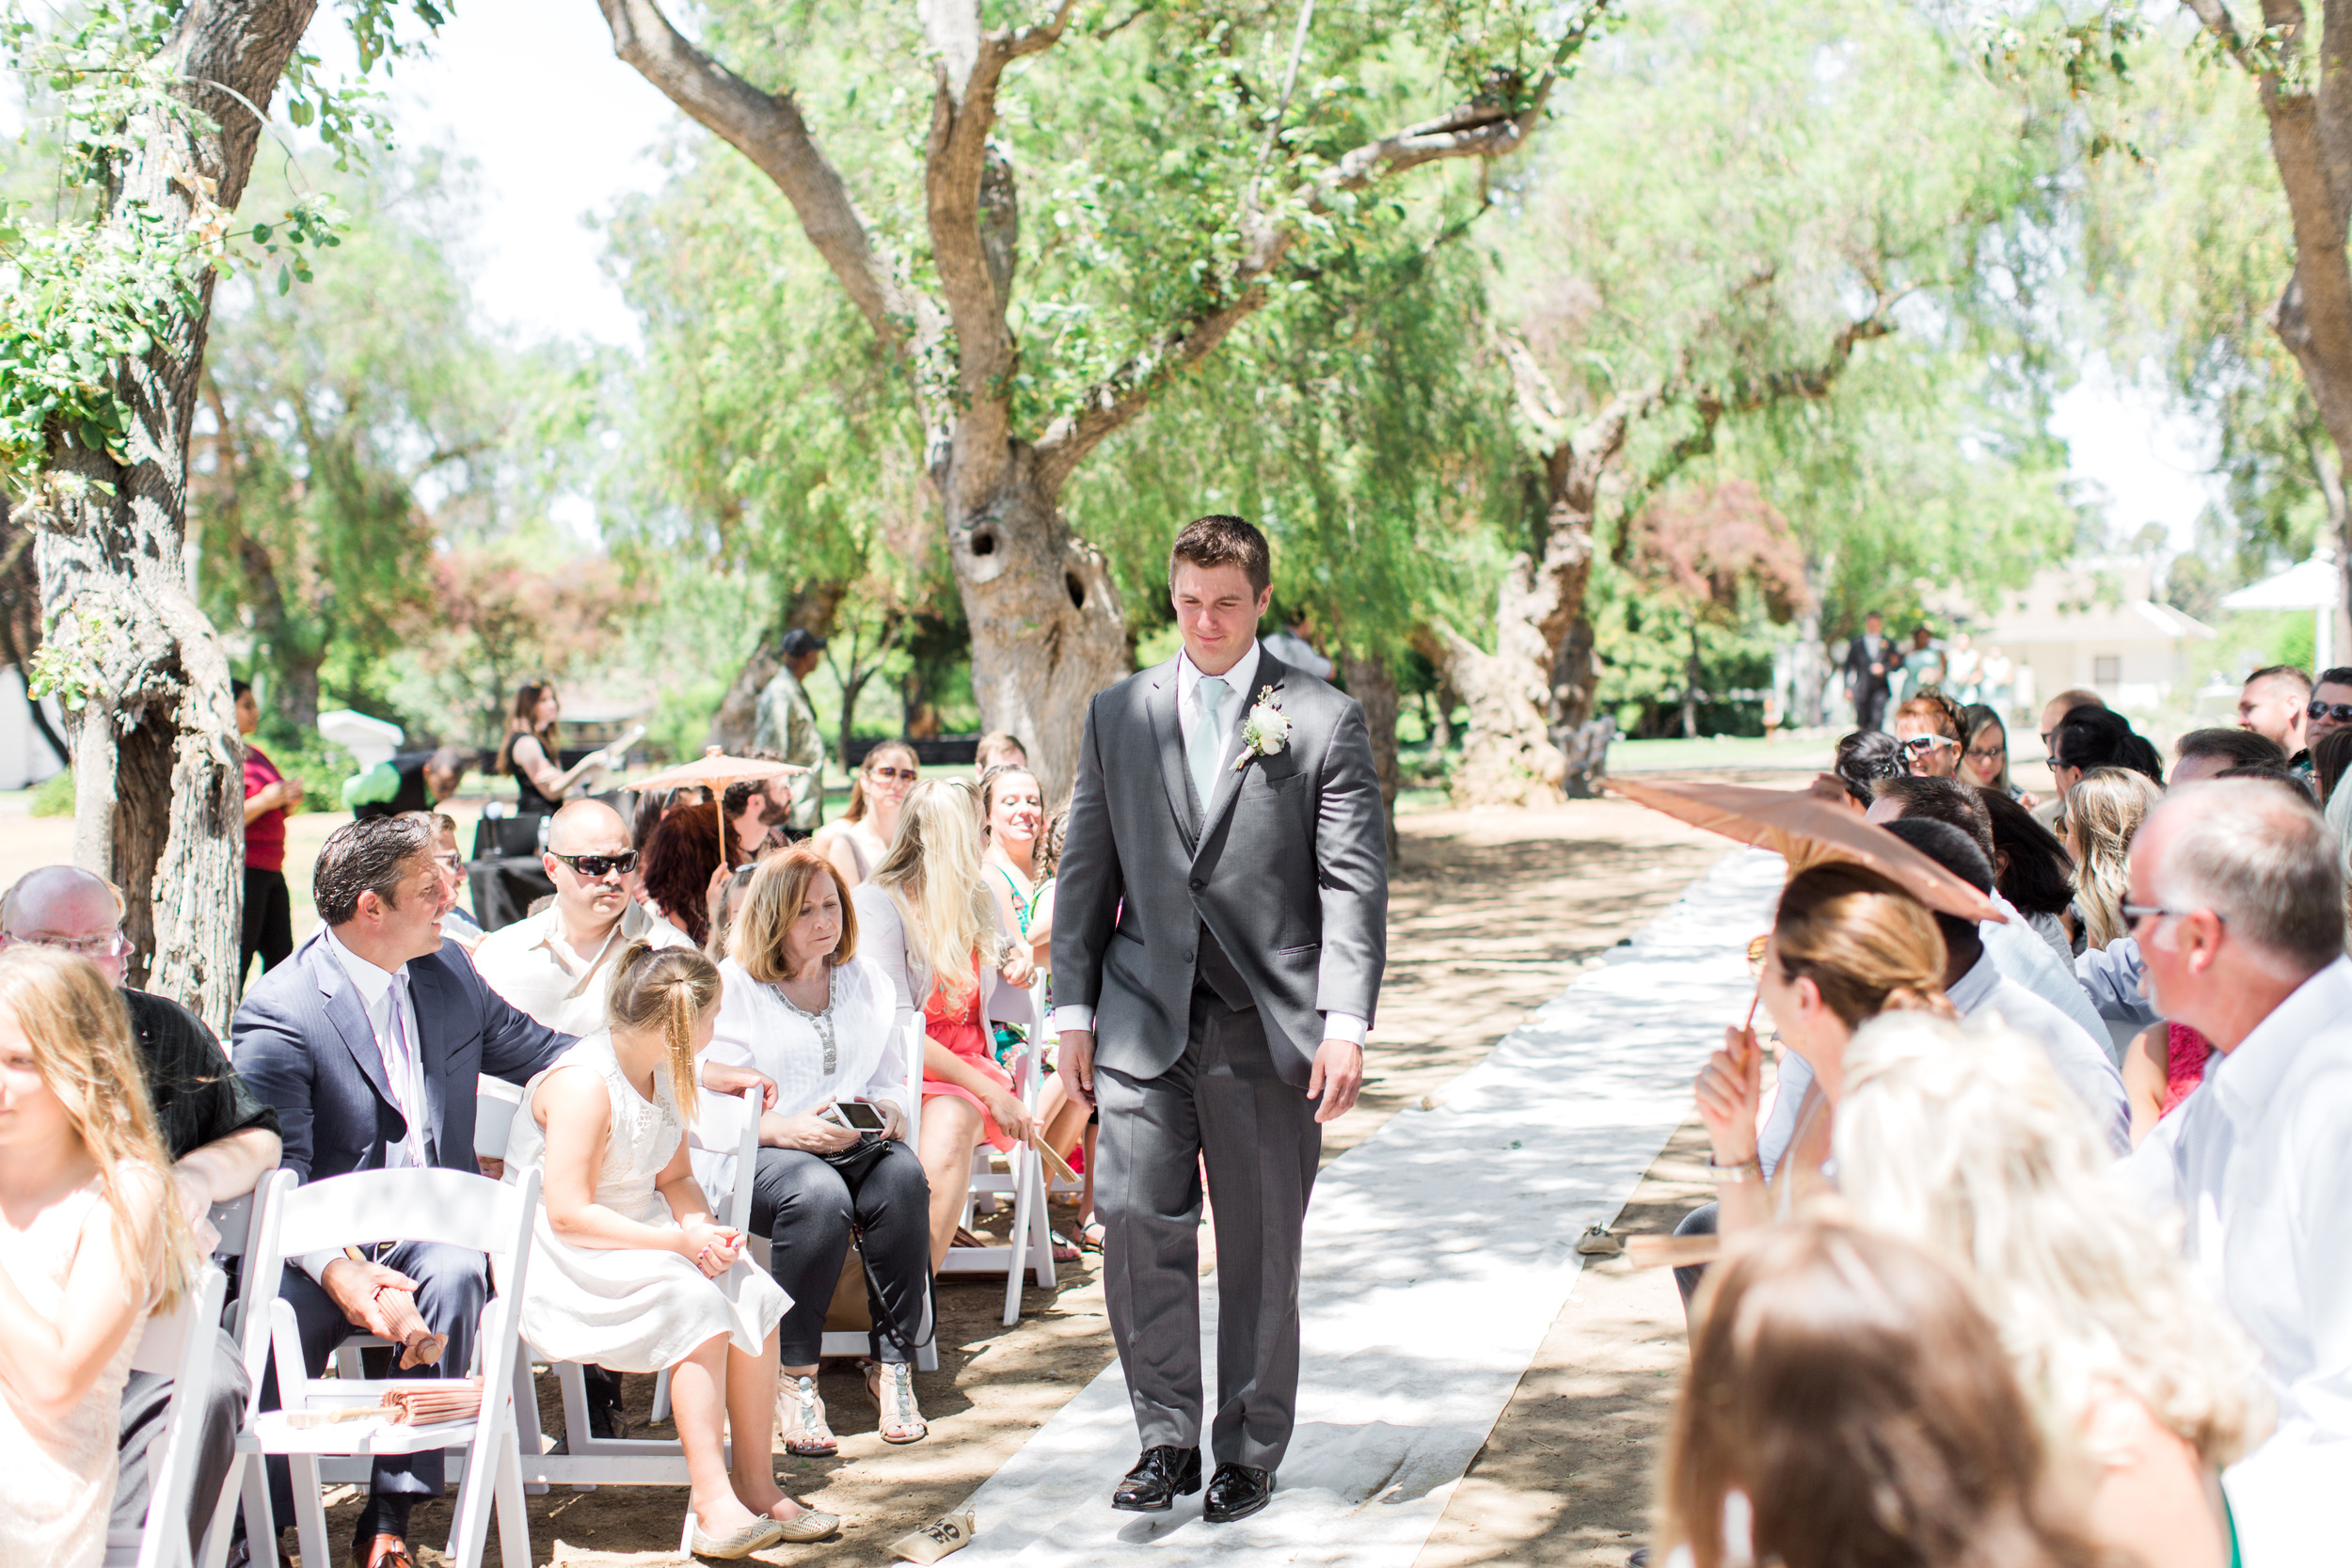 southern-inspired-wedding-at-ravenswood-historic-site-4456.jpg